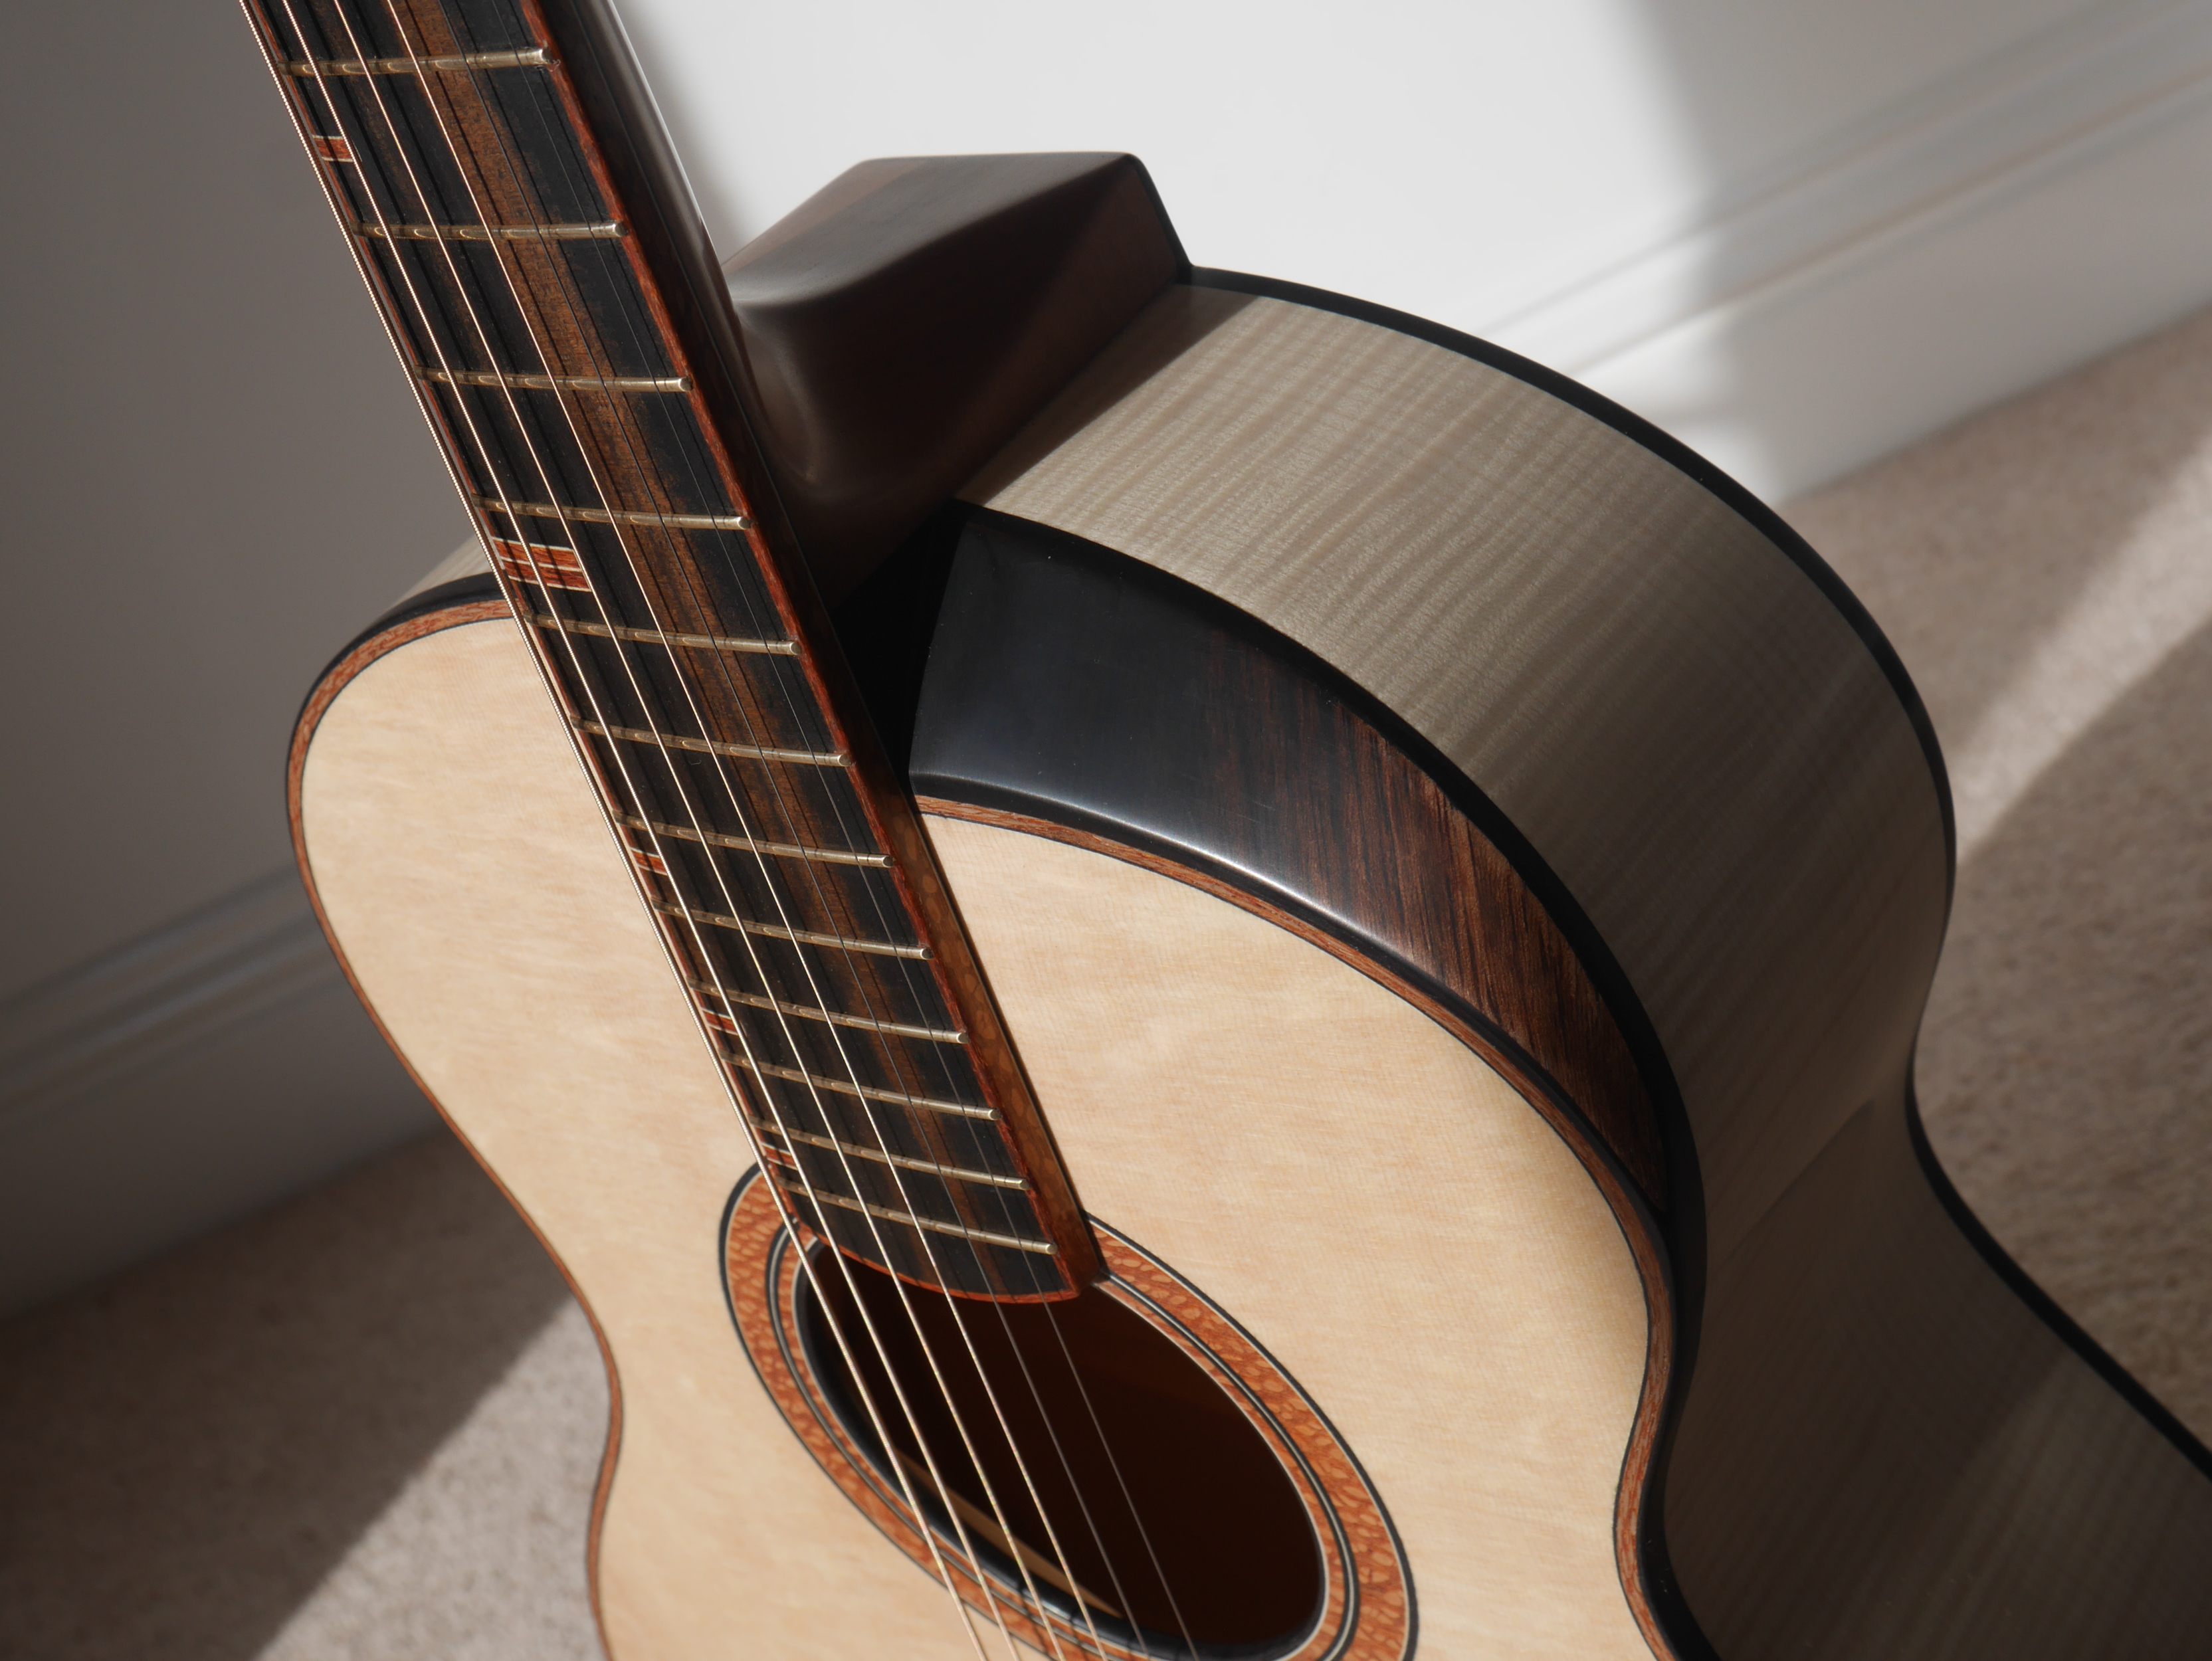 montgomery guitar, Andreas Montgomery, 12th fret, guitar bevel, cutaway, acoustic